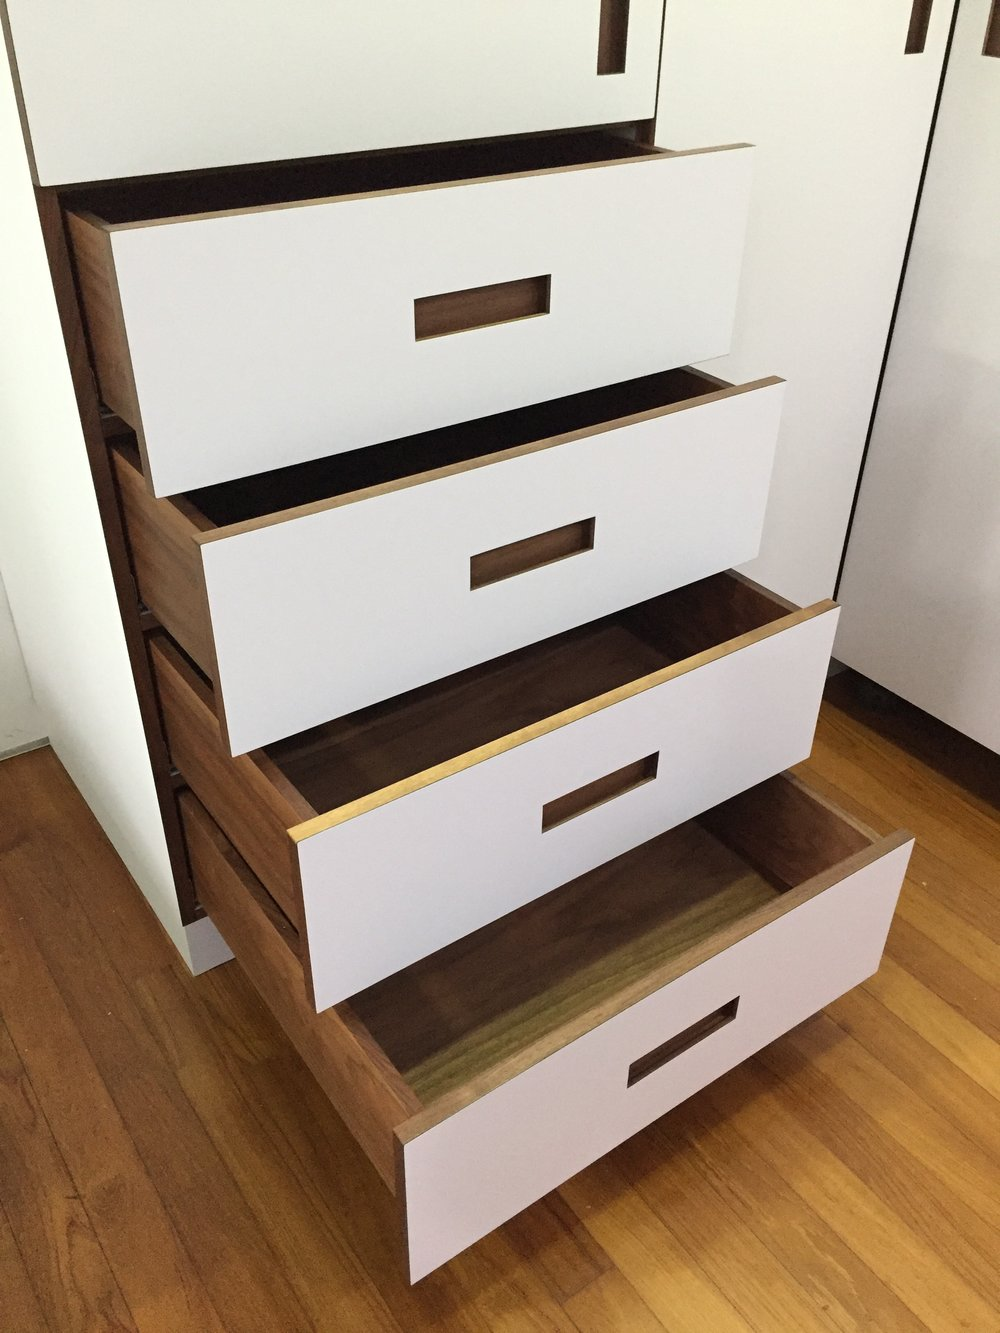 Exposed drawers with pocket handles in solid Walnut wood.